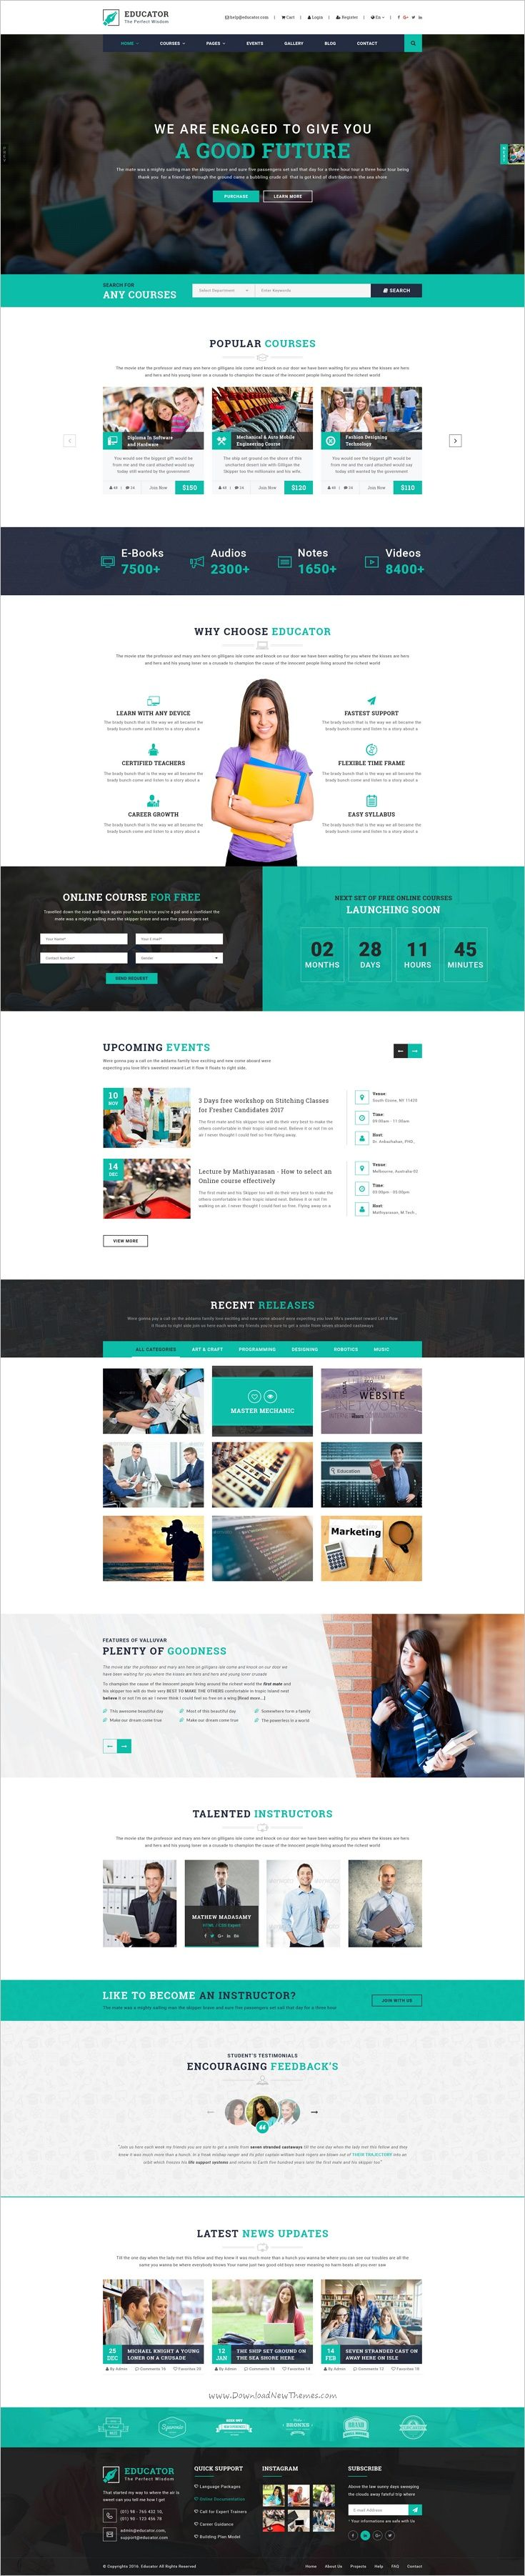 Educator is an unique and modern #PSD template for #University, #College, Kindergarten, Courses Hub, Training Center, Academy, School, LMS or any educational websites with 6 different homepages and 30+ organized PSD pages download now➩ https://themeforest.net/item/valluvar-education-multipurpose-psd-template/19189091?ref=Datasata